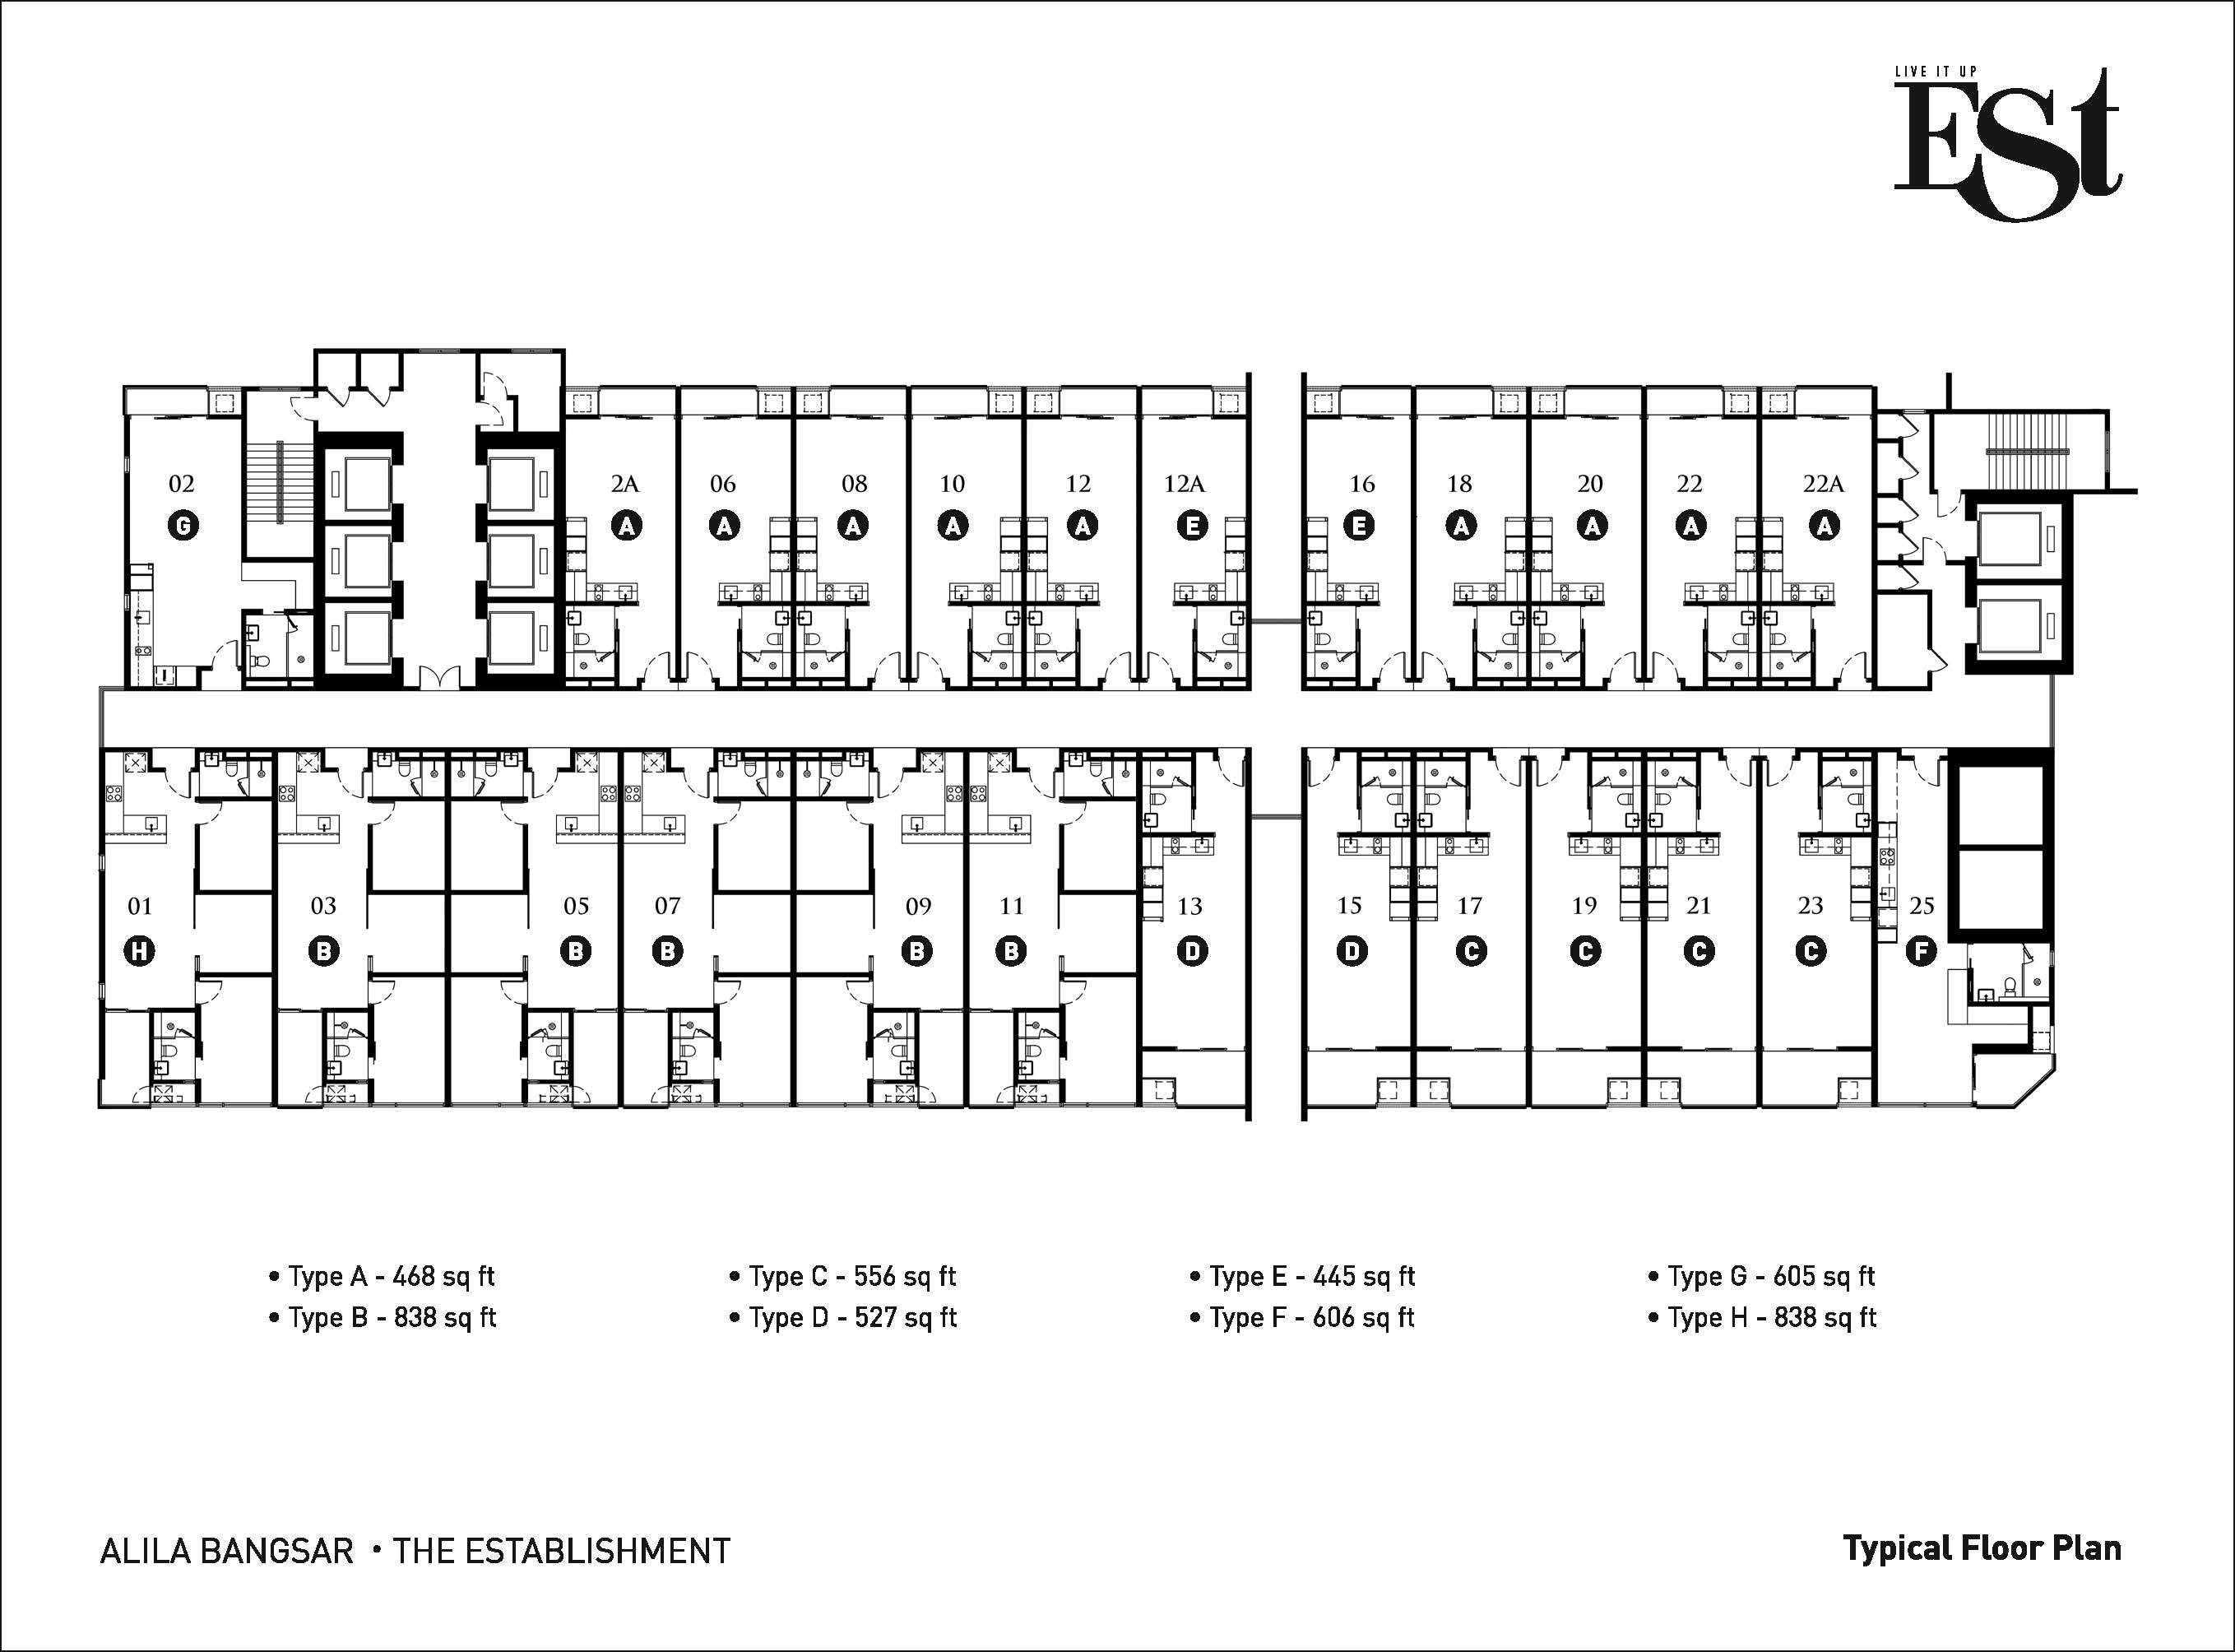 Site Plan of The Establishment